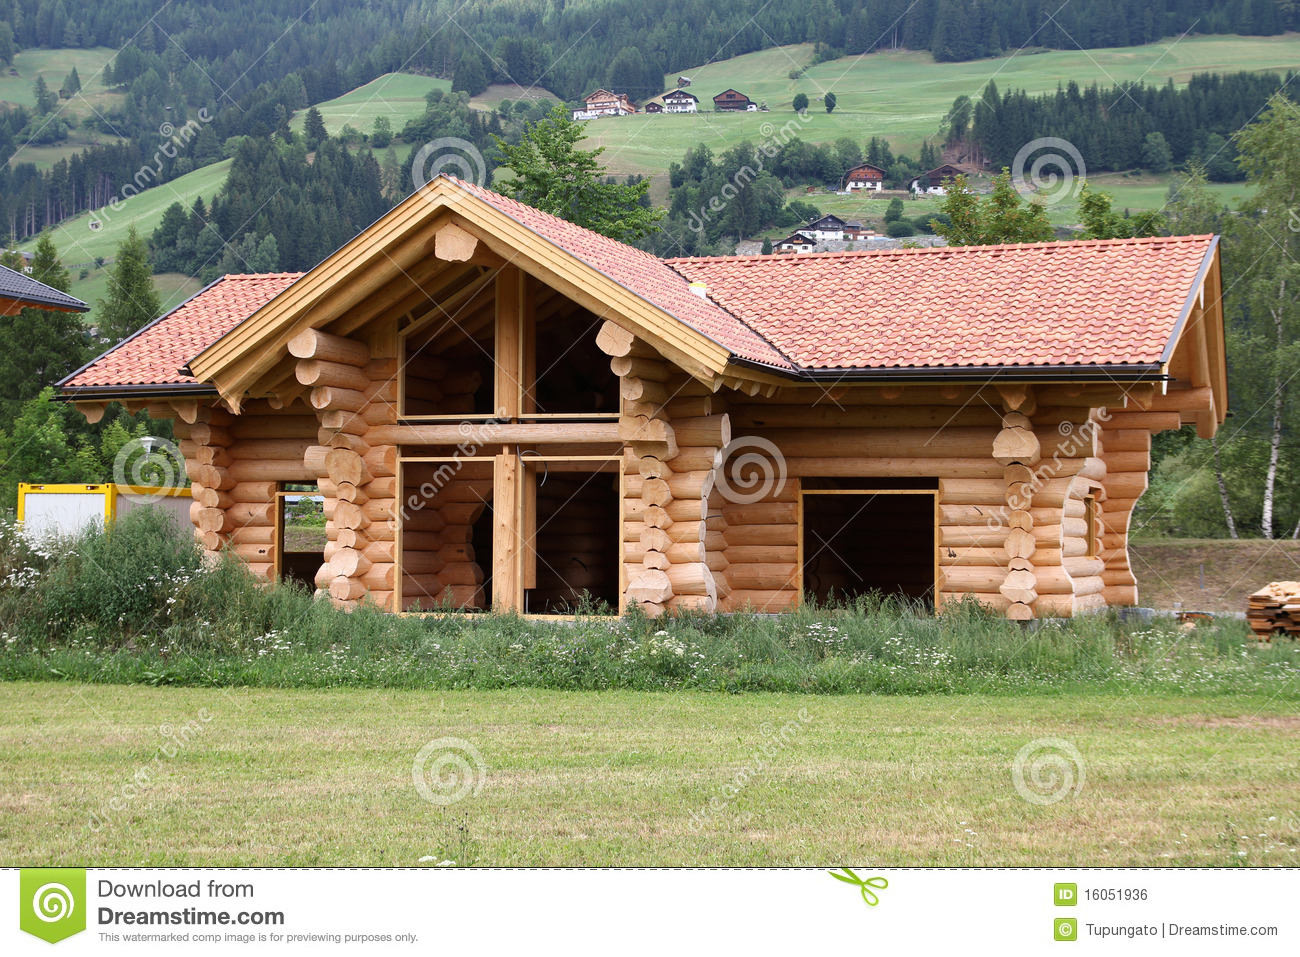 12 Exemples De Maisons A Larchitecture Spherique also Gite Chalet Javen A Megeve En Haute Savoie 74G173051 as well Farmhouse moreover Log Cabin 2107485 additionally Cabin Fever Chic Cabins To Rent This Winter. on modern mountain cabin design plans